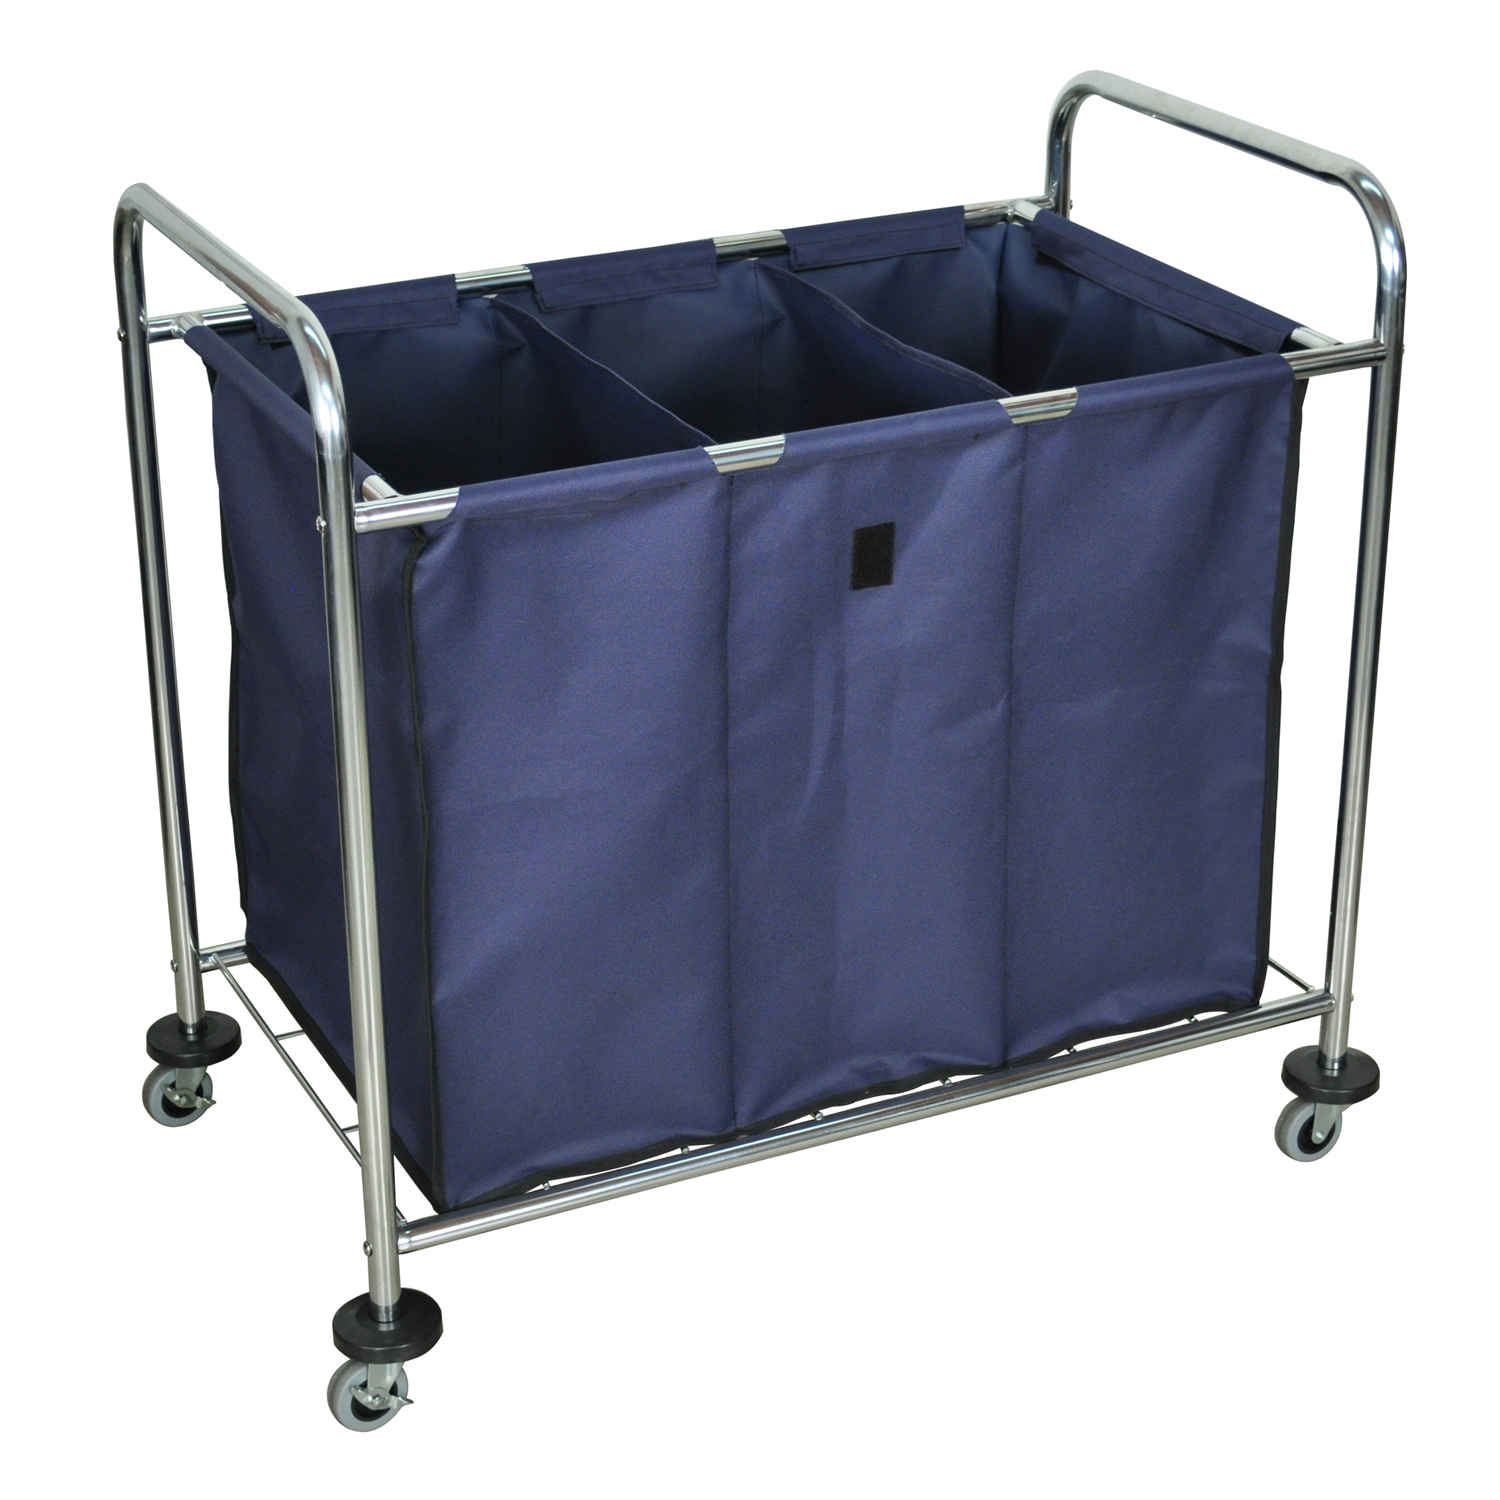 Offex Mobile Heavy Duty Industrial Laundry Sorter Cart With Triple Dividers Navy at Sears.com